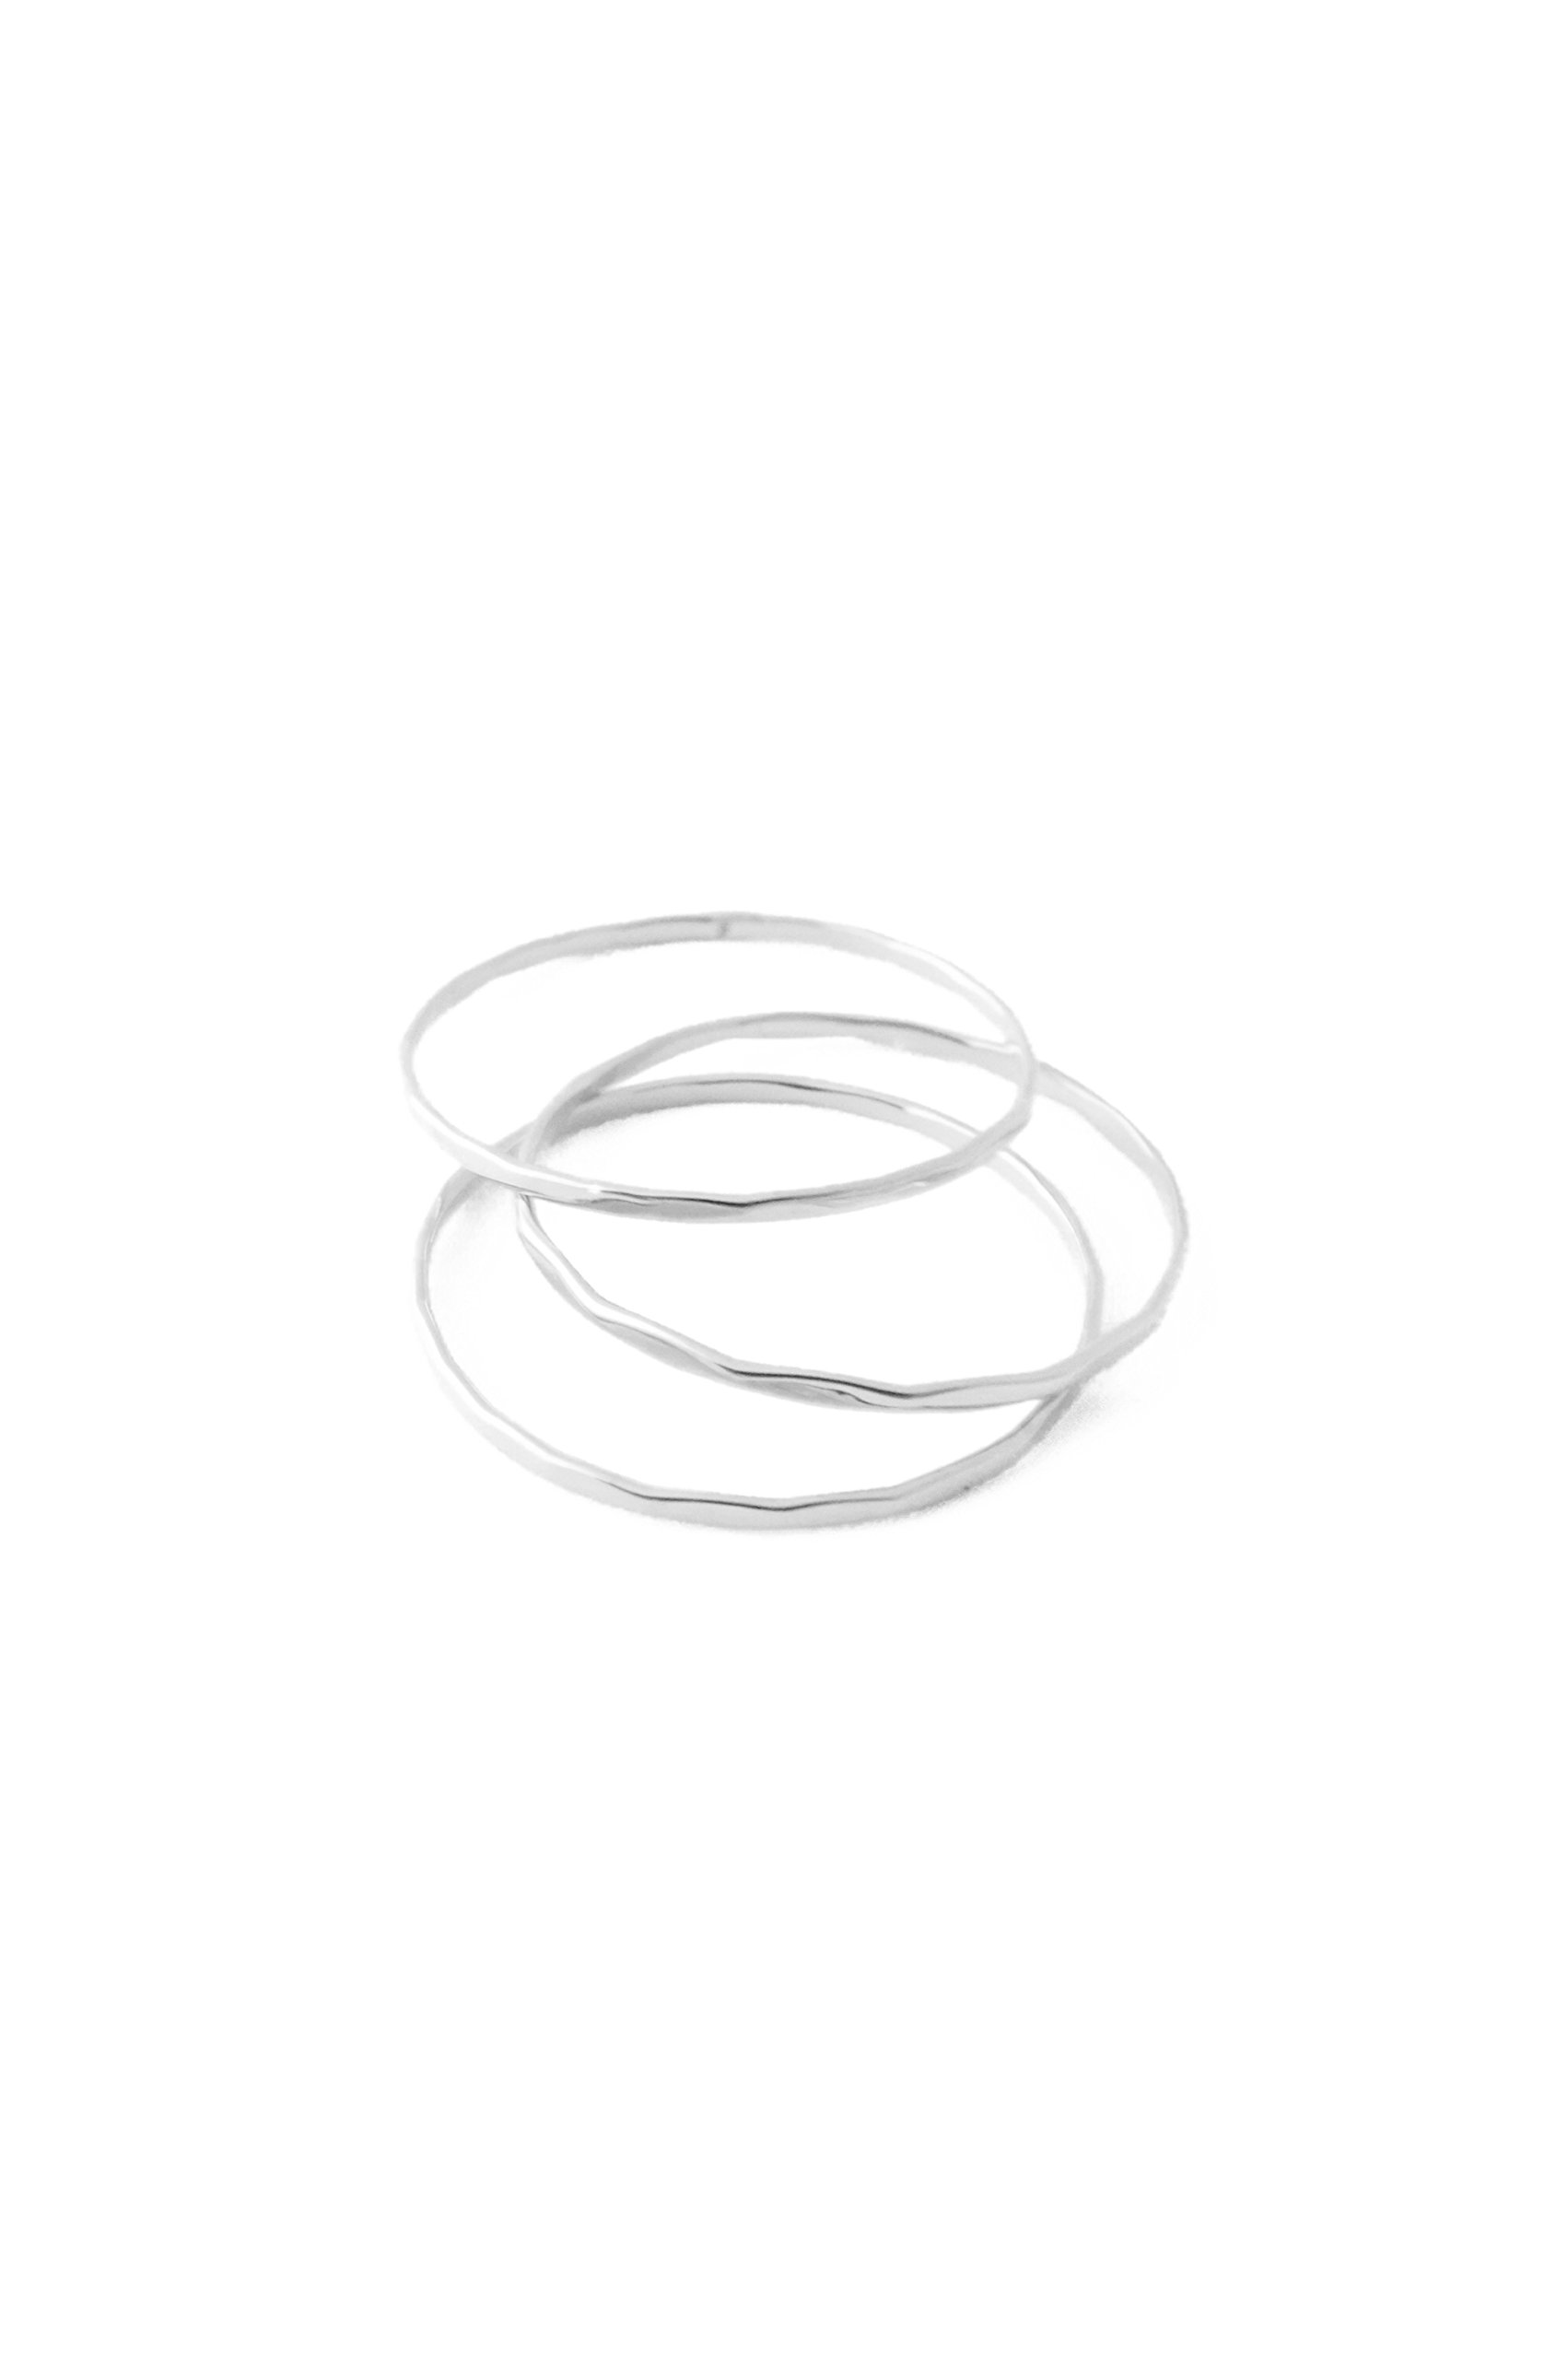 HONEYCAT Super Skinny Hammered Stacking Rings Trio Set in Gold, Rose Gold Silver   Minimalist, Delicate Jewelry (Silver, 7)